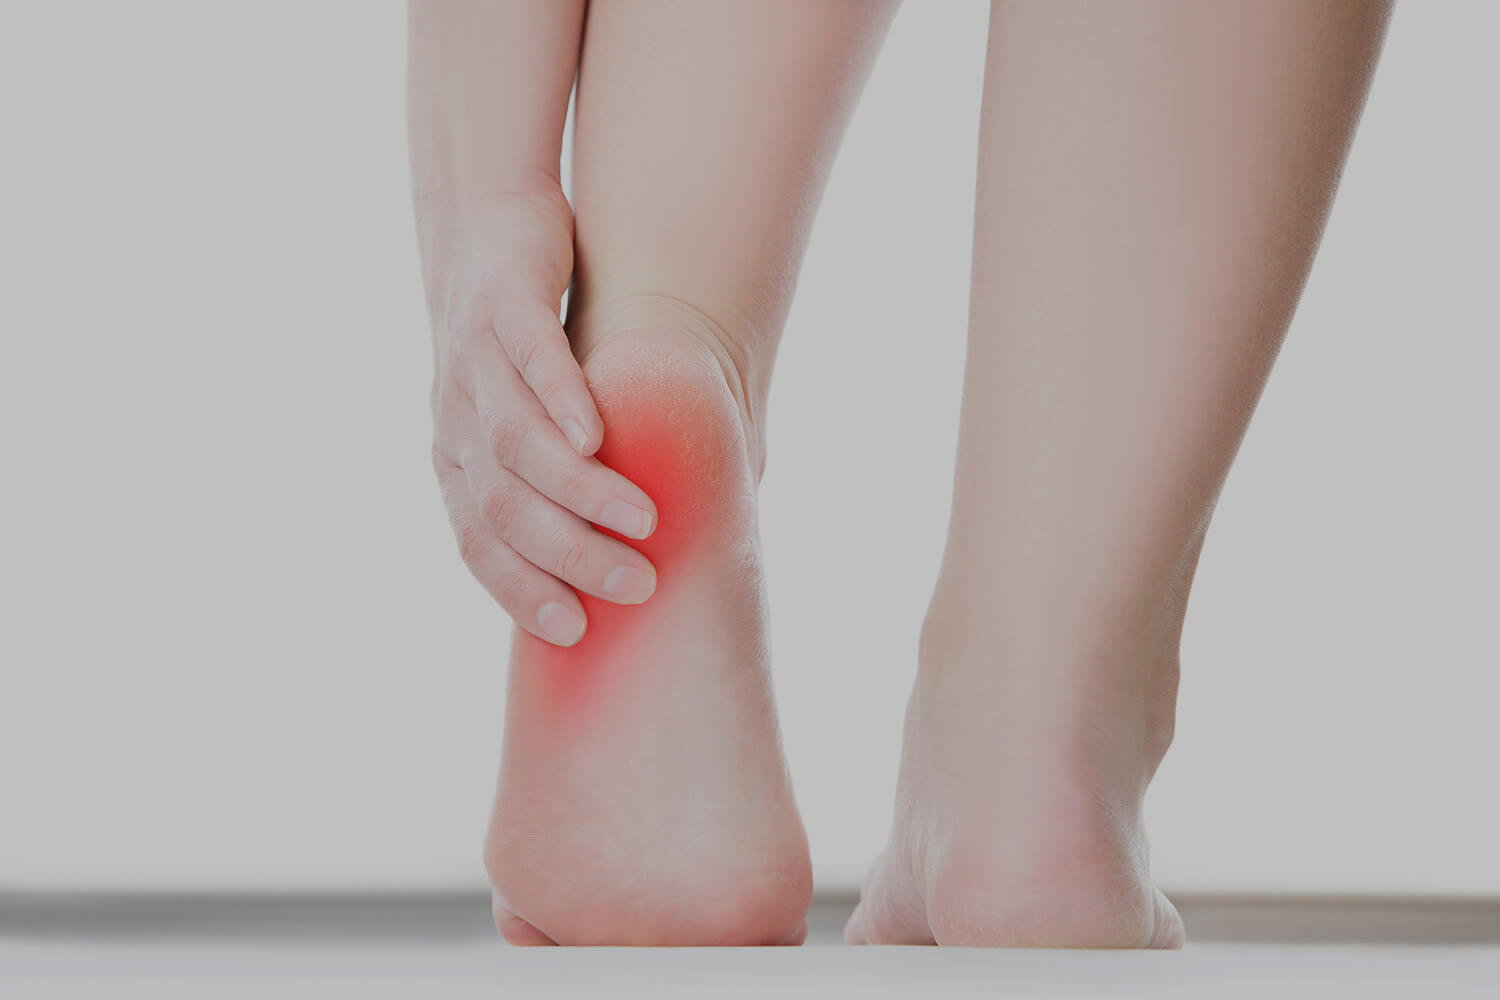 a9e5db1fc3 Heel Pain: What are the Causes, Symptoms & Treatments | Synxsole